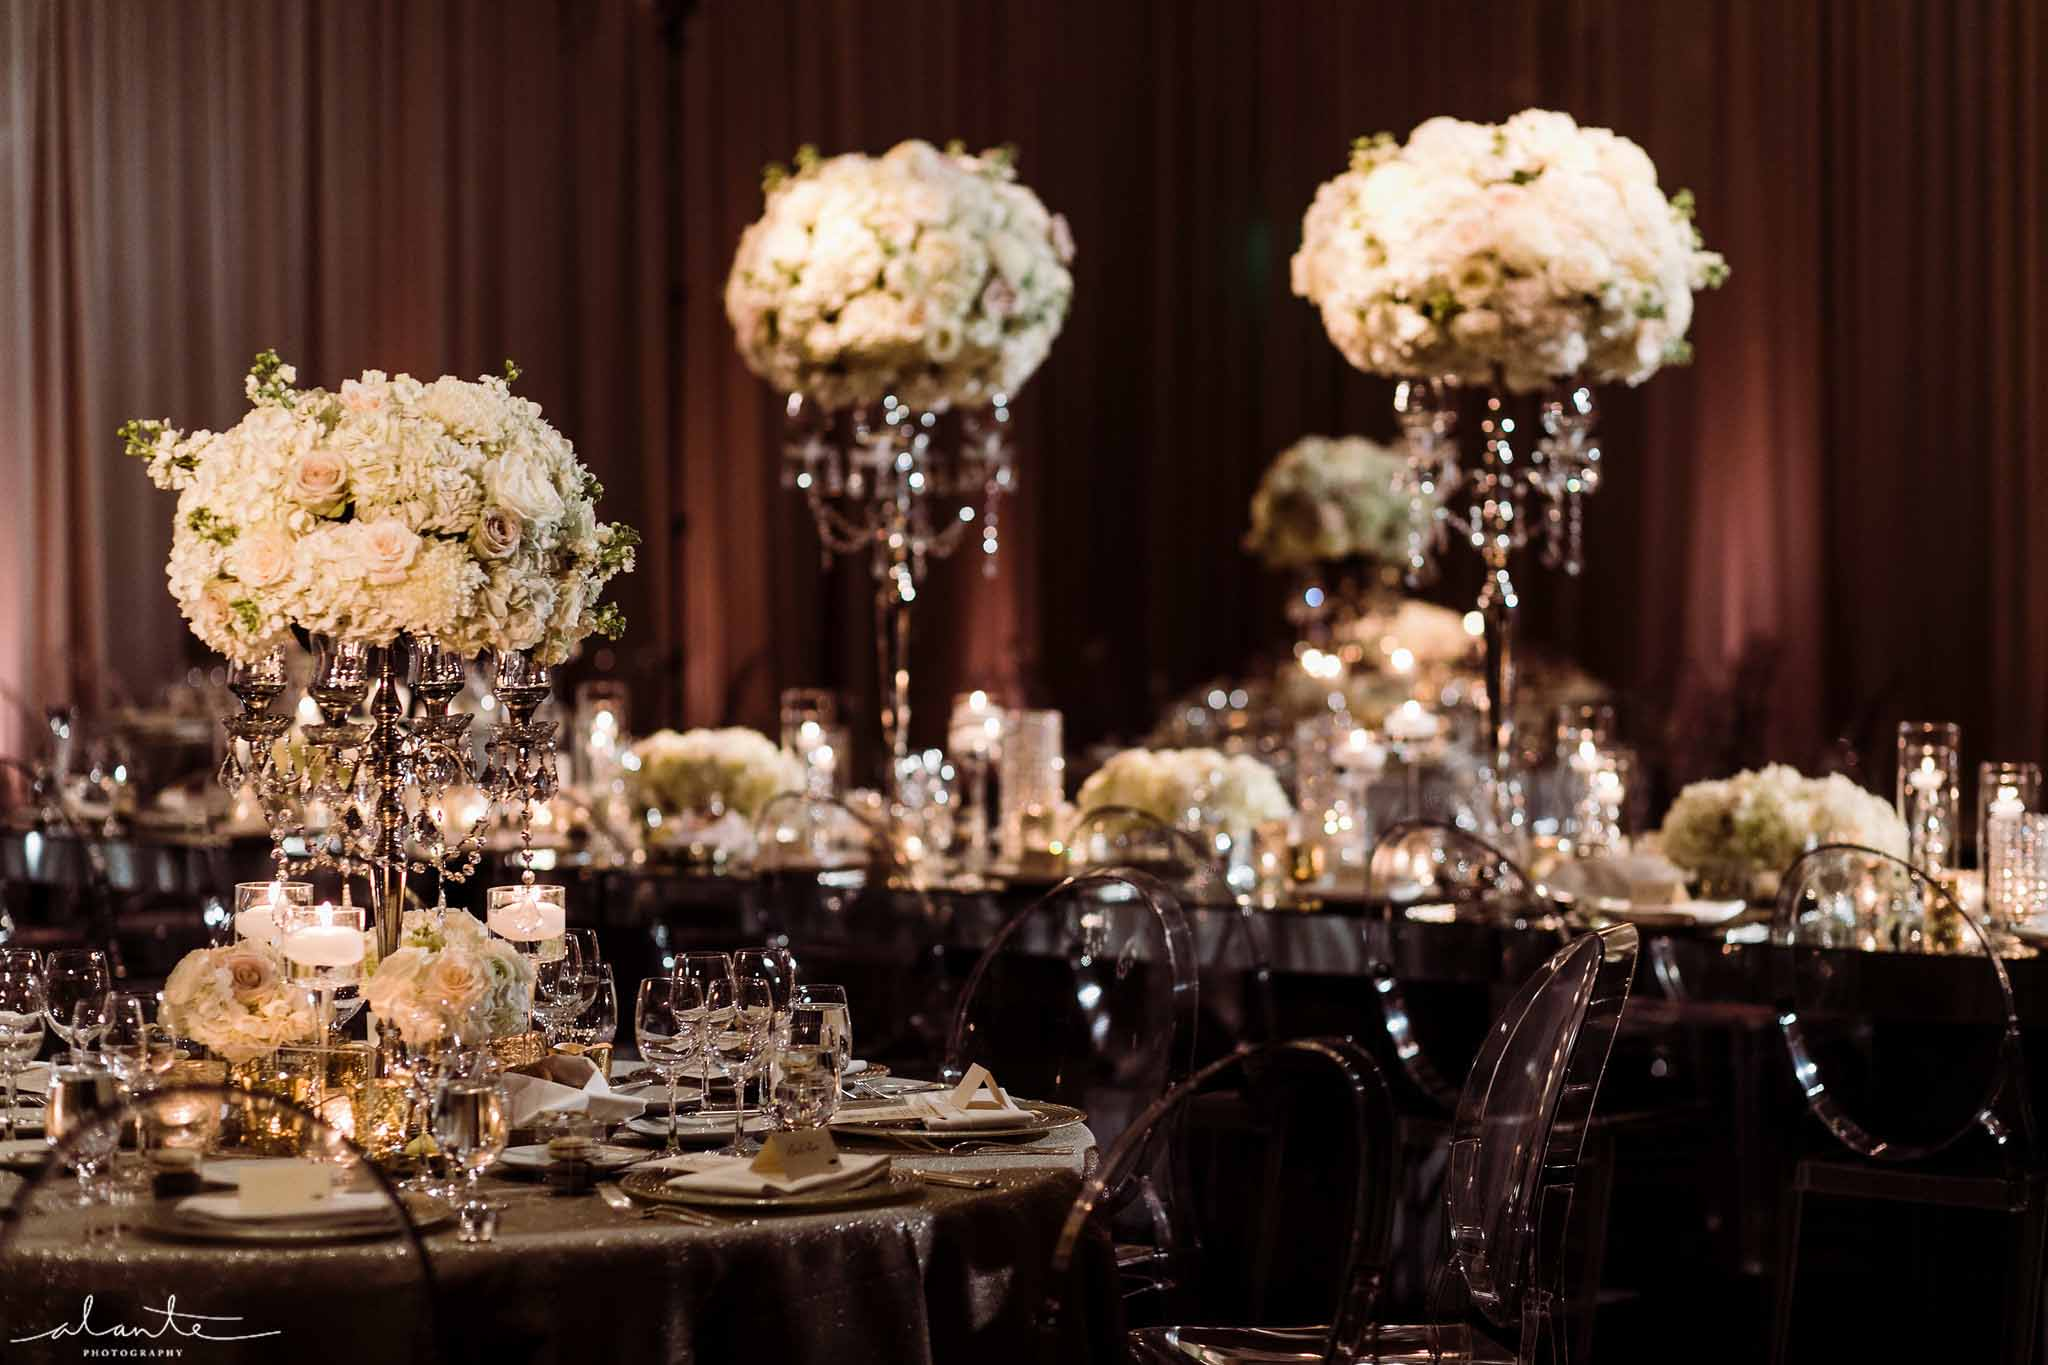 Tall white floral centerpieces on silver crystal candelabras - Luxury Winter Wedding at the Four Seasons by Flora Nova Design Seattle